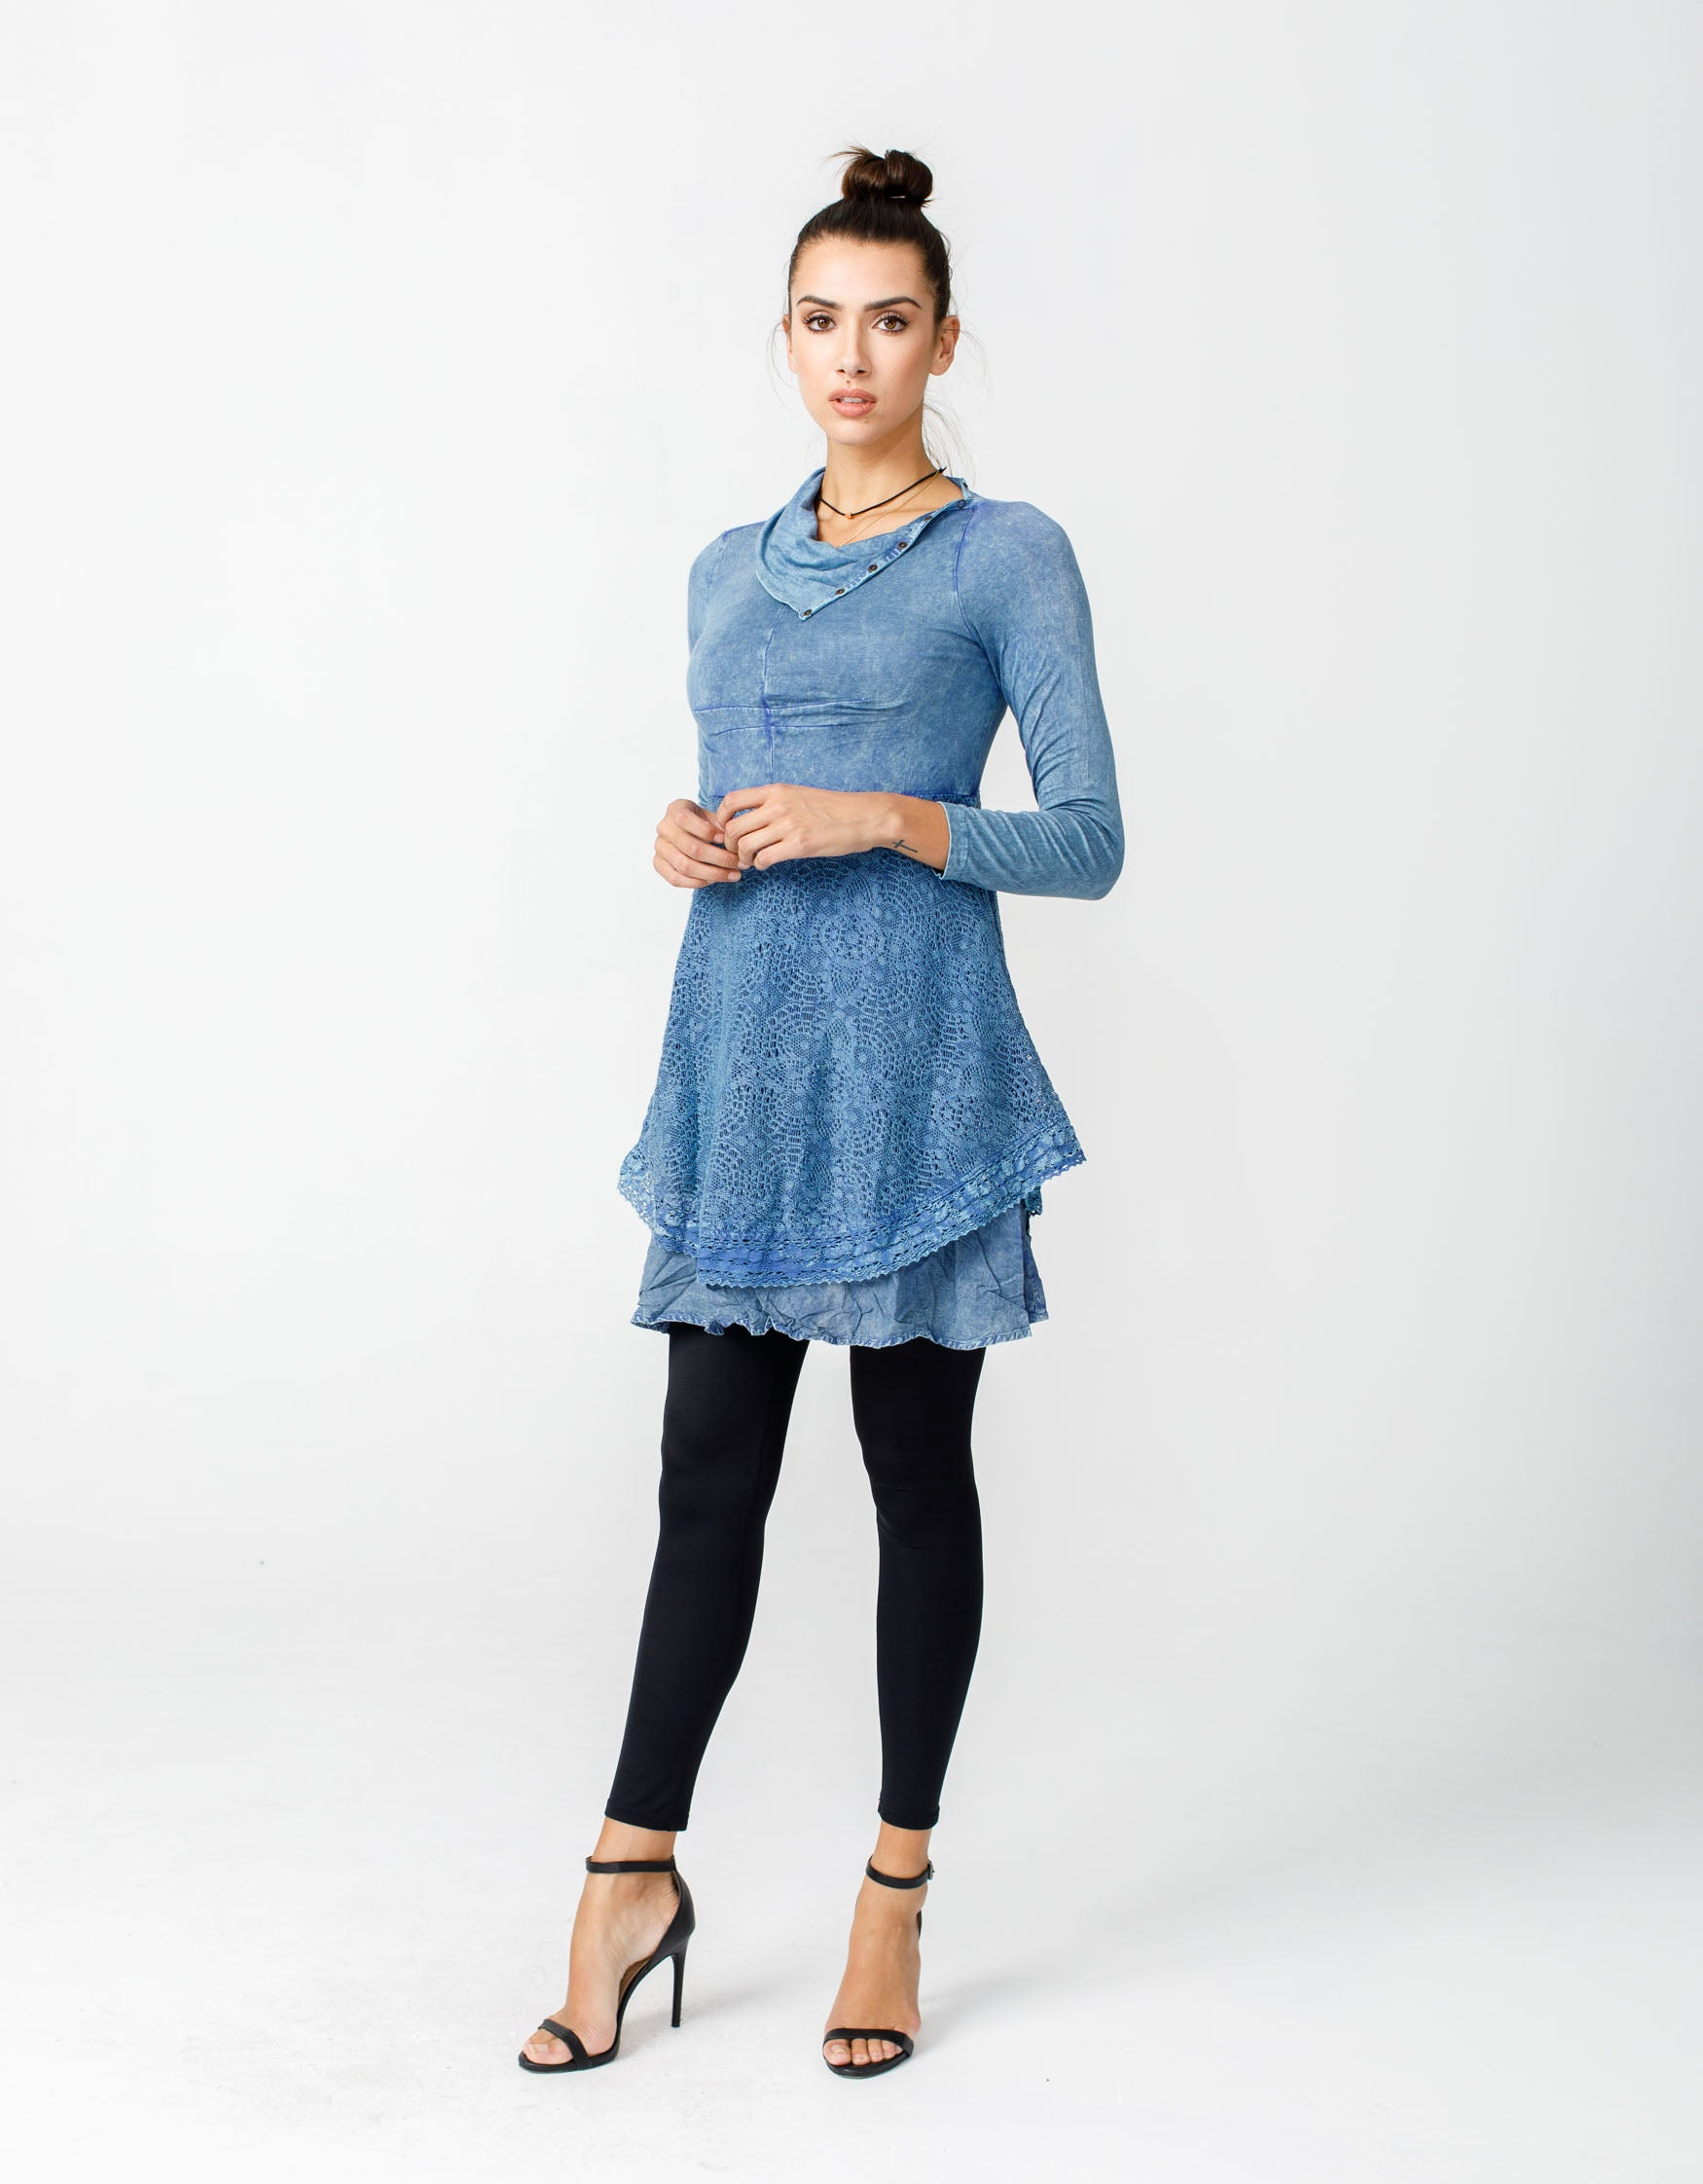 Bohemian Dreams Top - Washed Indigo